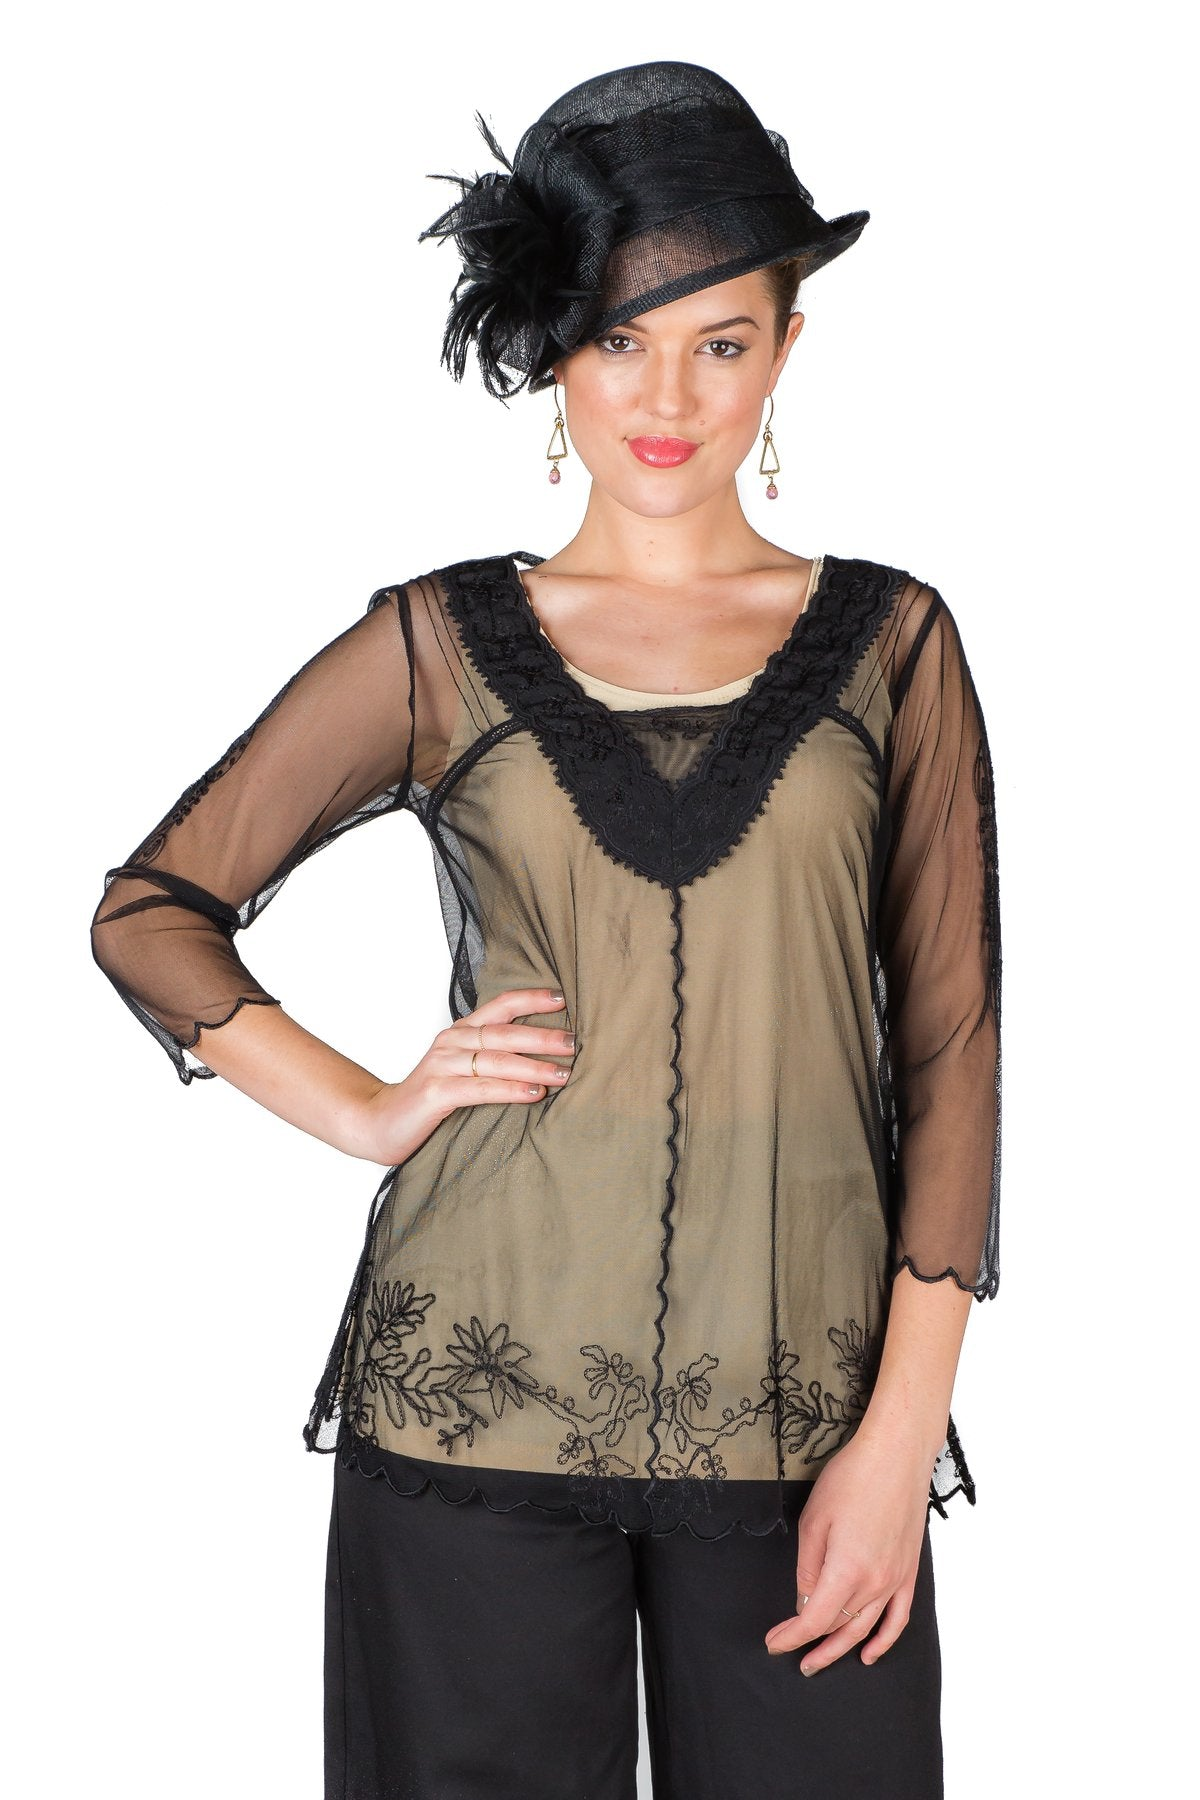 Edwardian Blouses |  Lace Blouses & Sweaters Victorian Vintage Inspired Top in Black by Nataya $88.00 AT vintagedancer.com